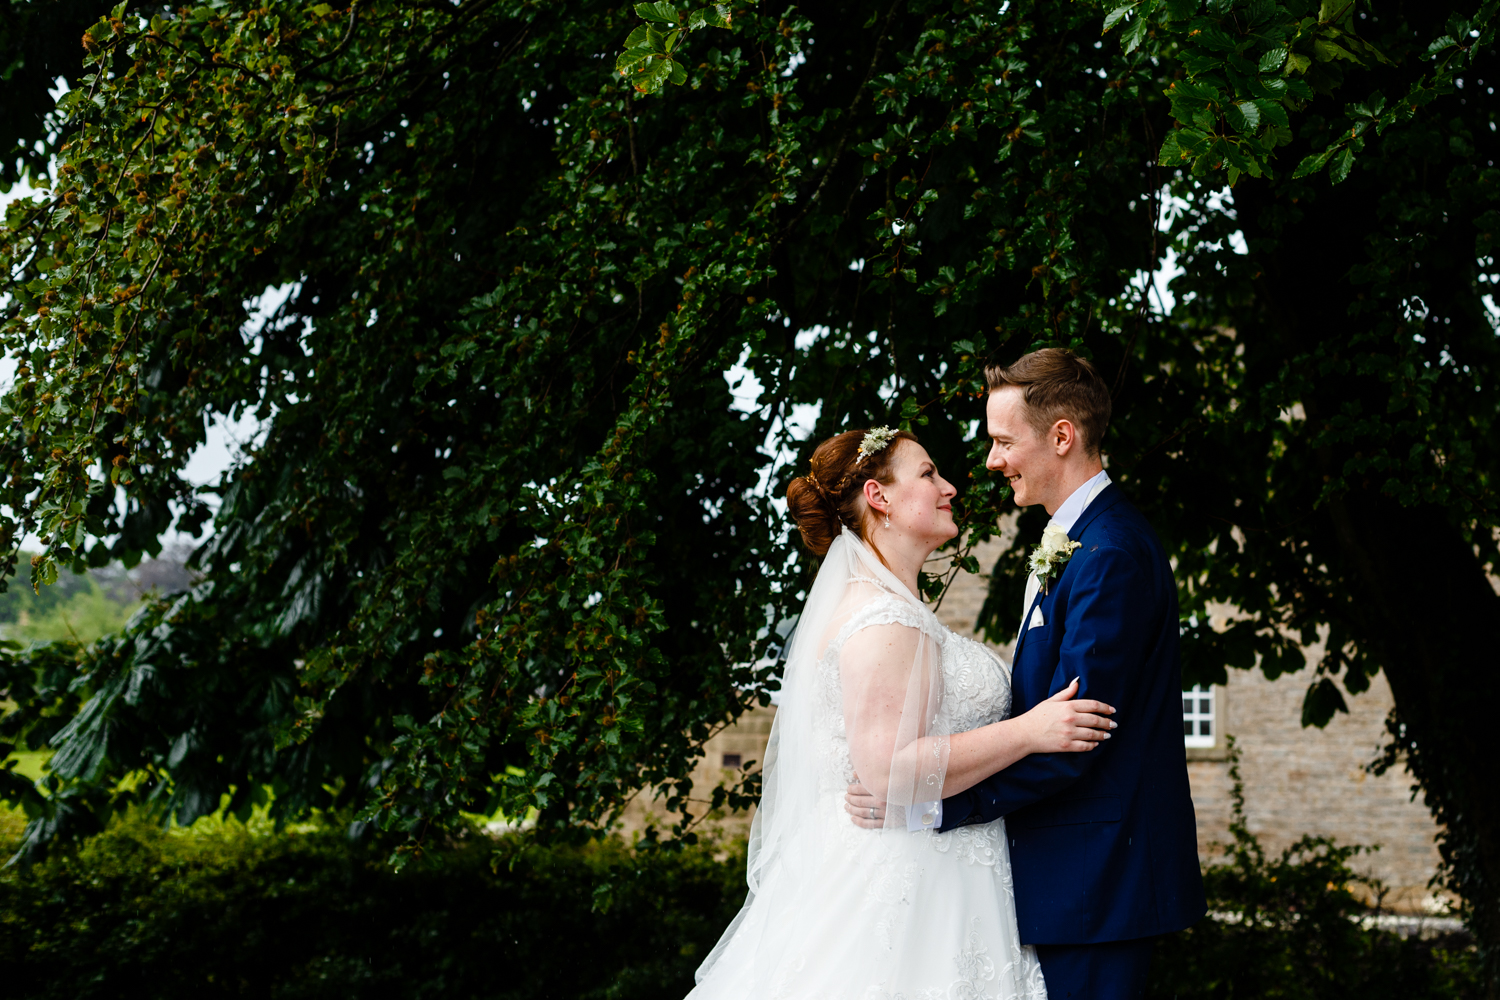 Lancashire-wedding-photographer-adele-and-alex-091.jpg